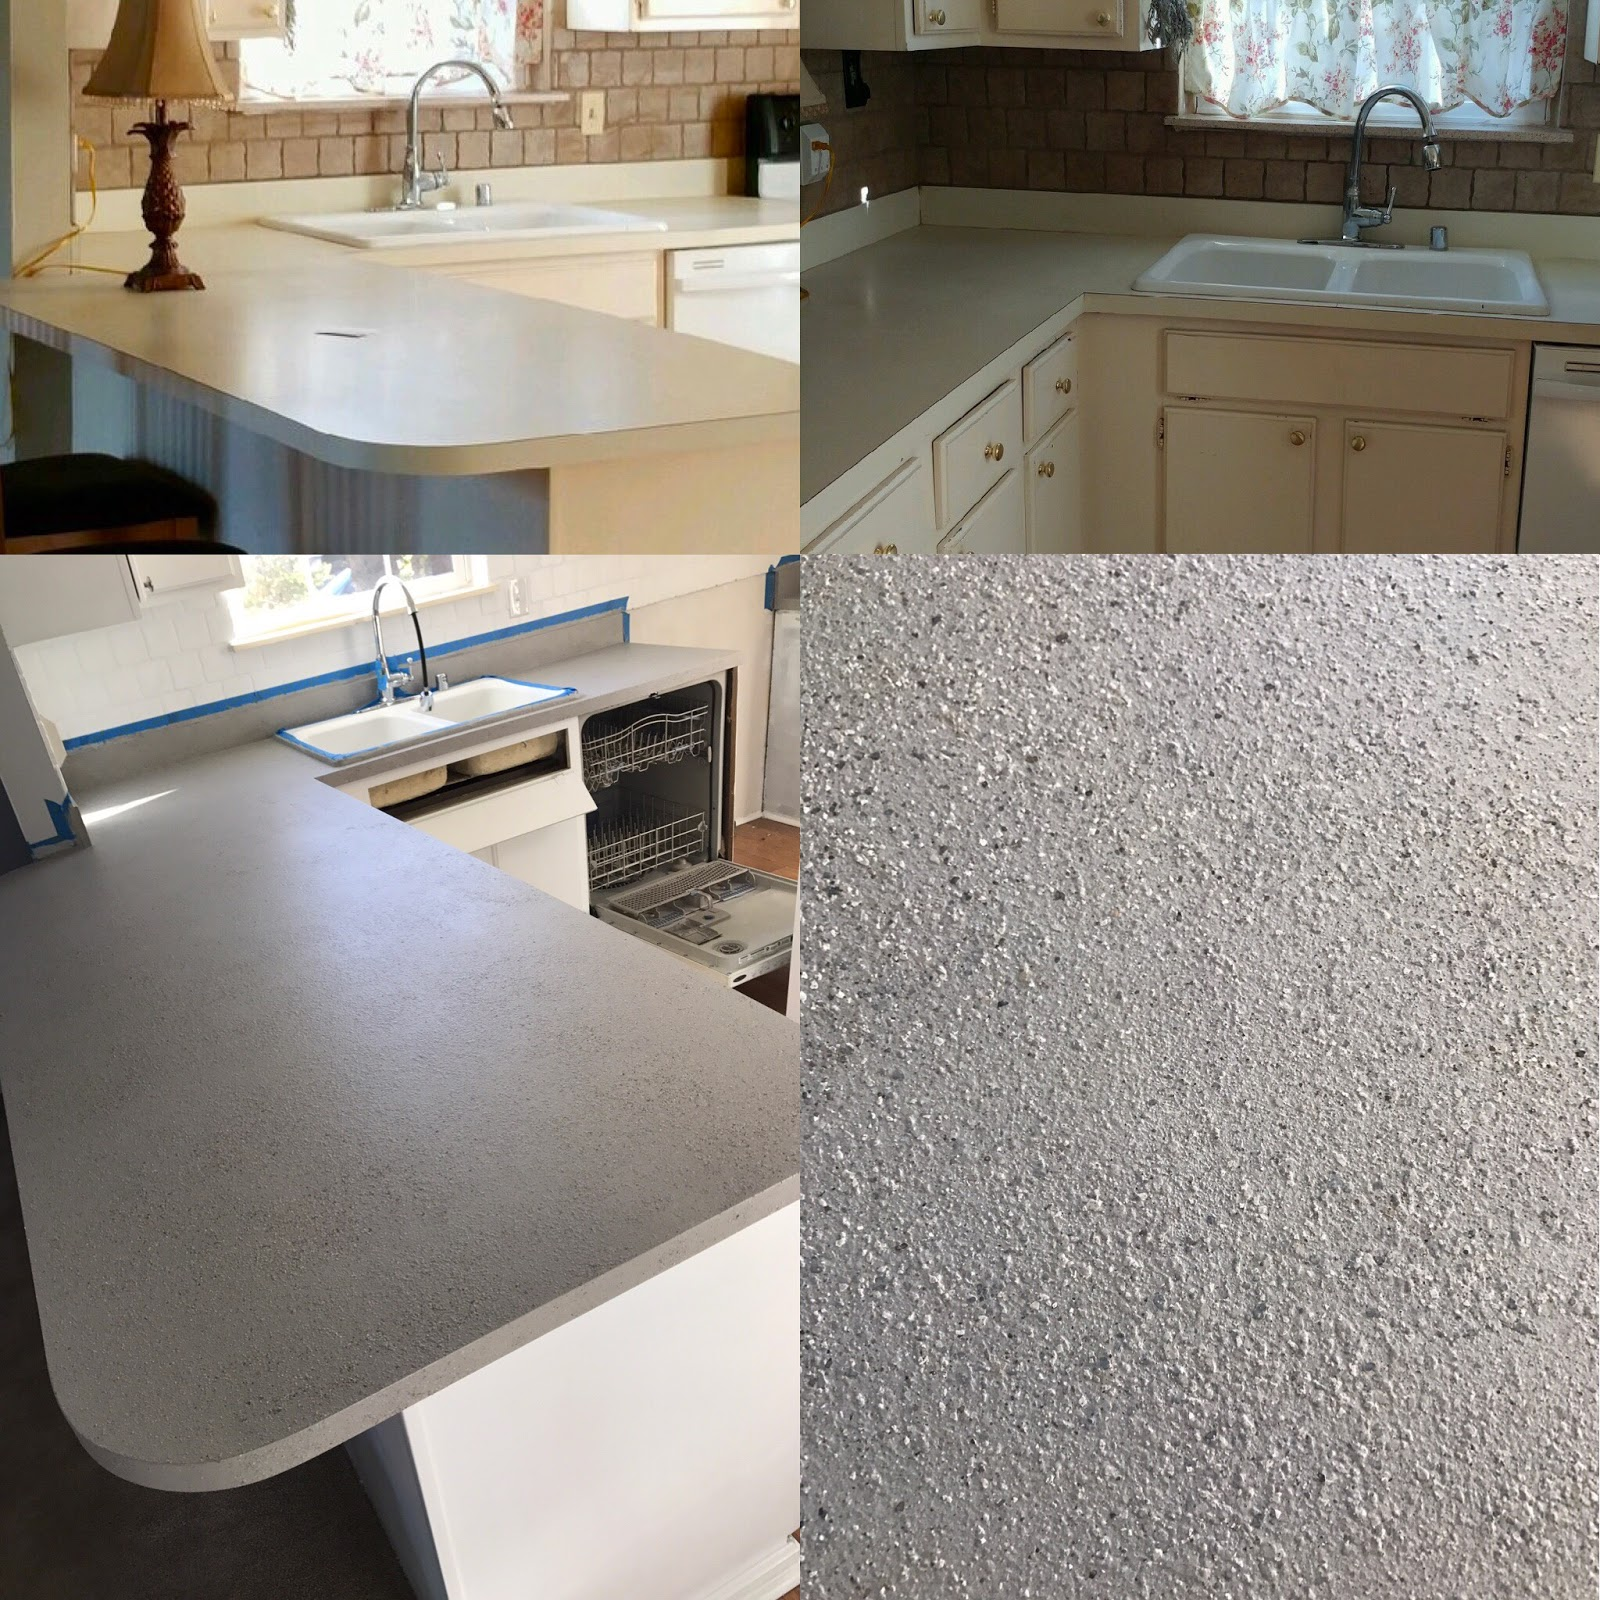 Daich Spreadstone Countertop How To Paint Laminate Countertops